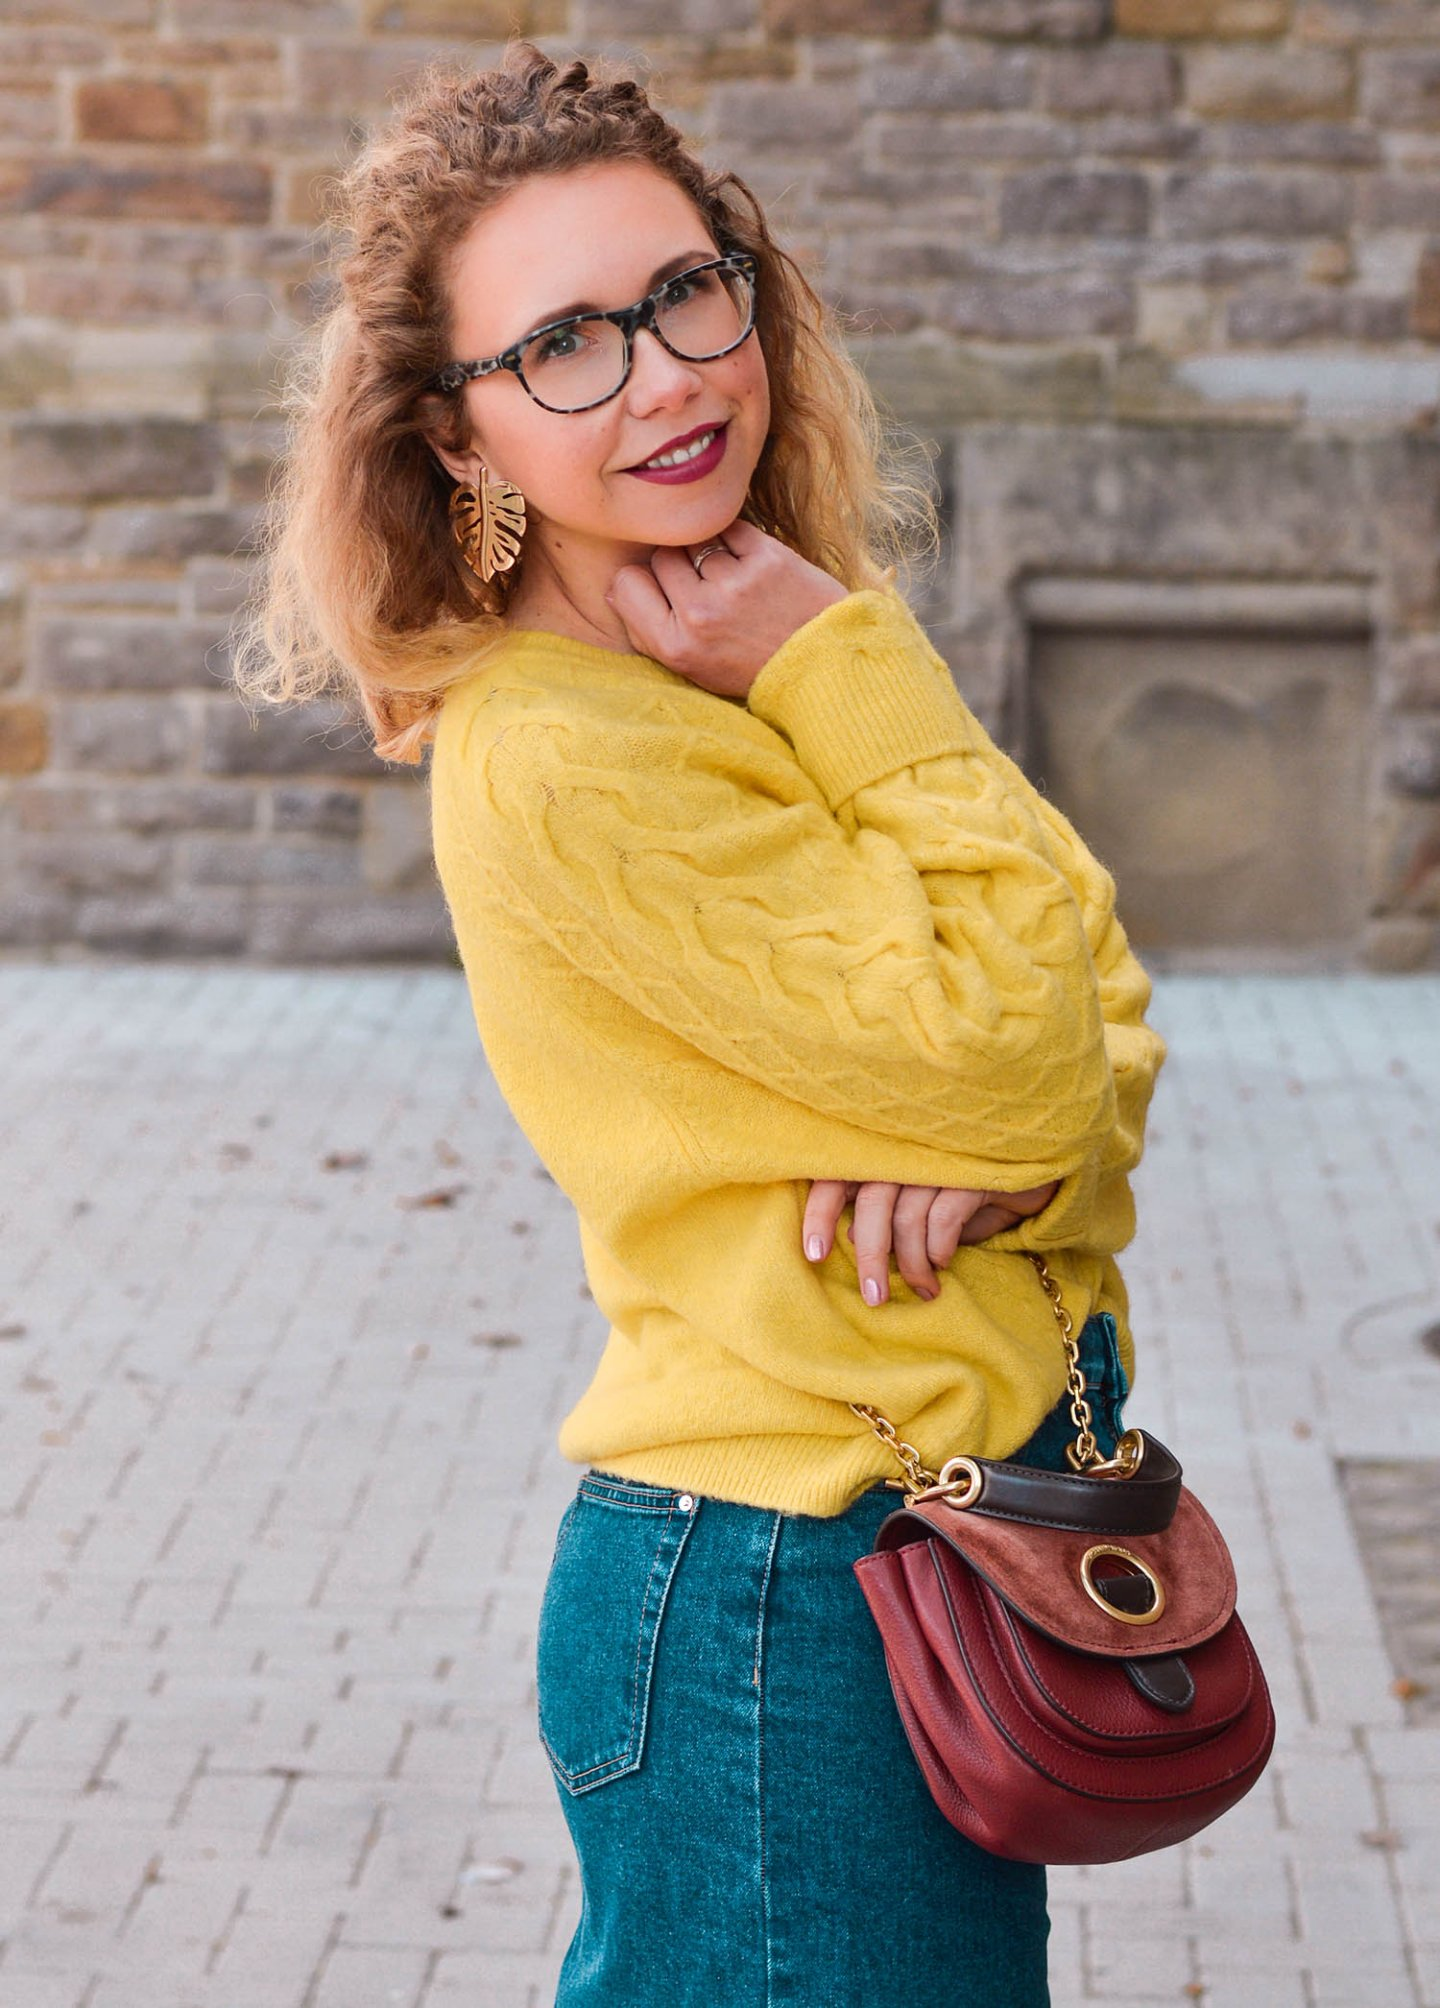 strick, jeans und saddle bag